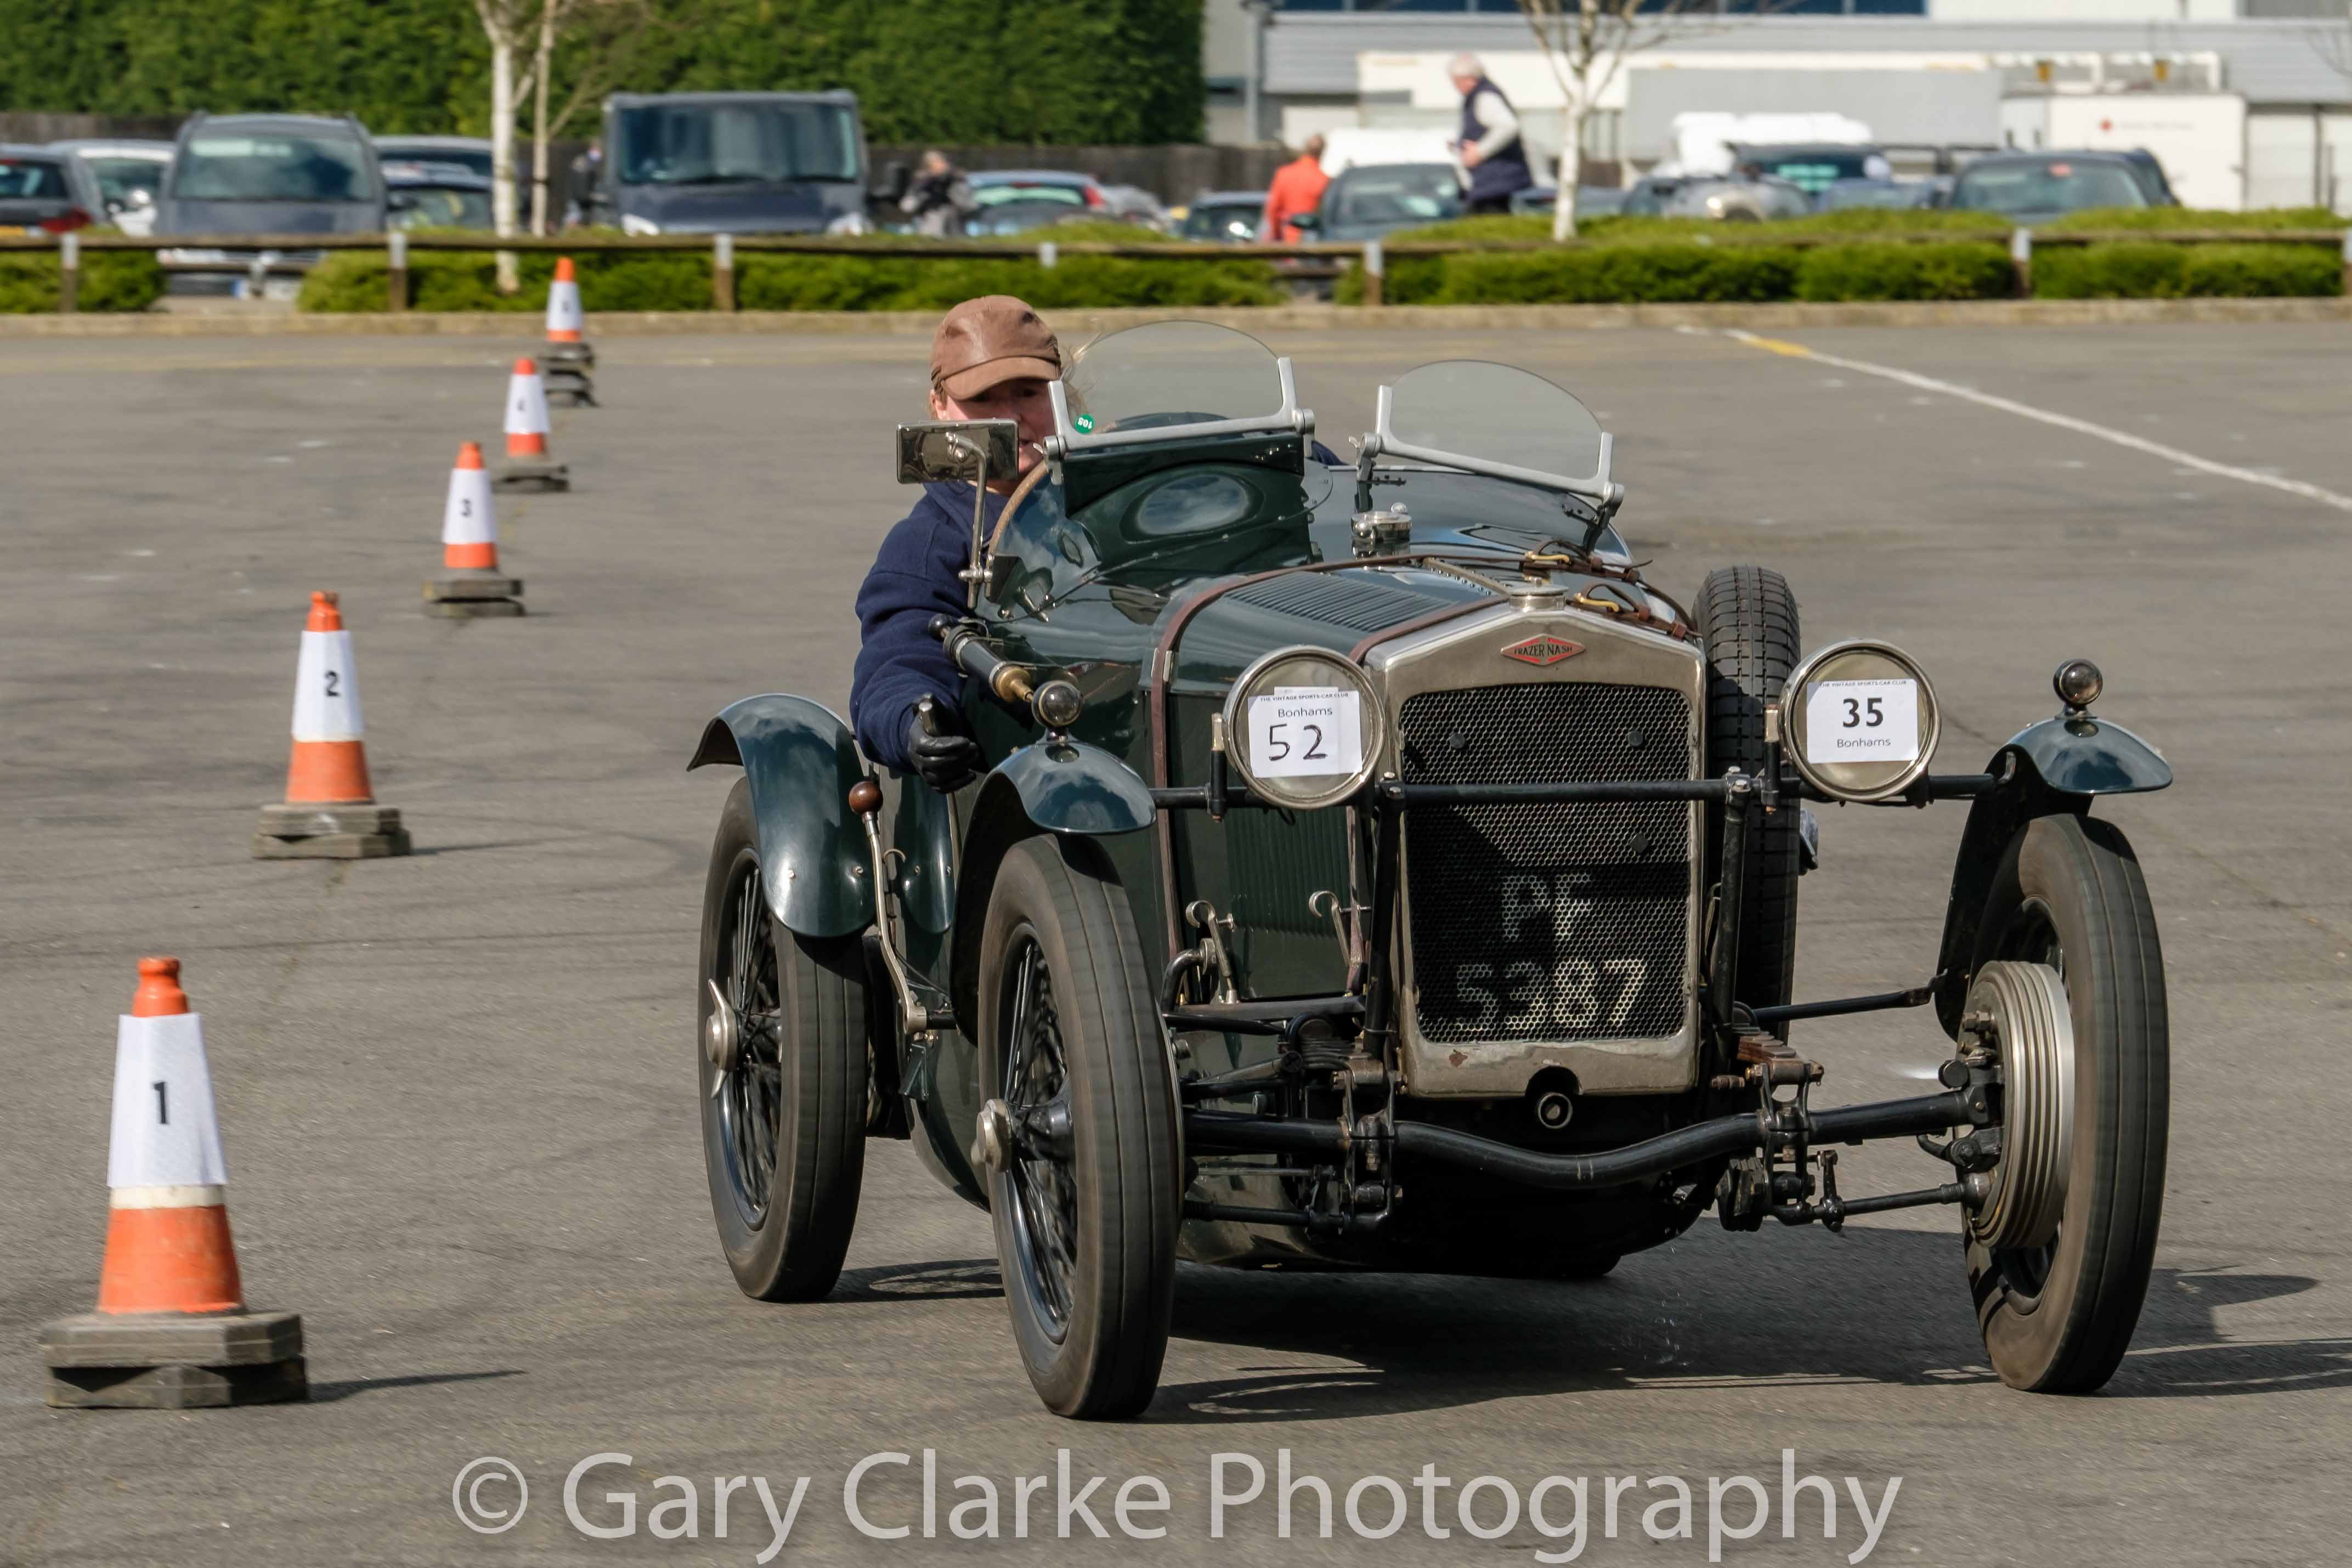 Entries Still Available for the Oulton Park AutoSolo & Concours cover